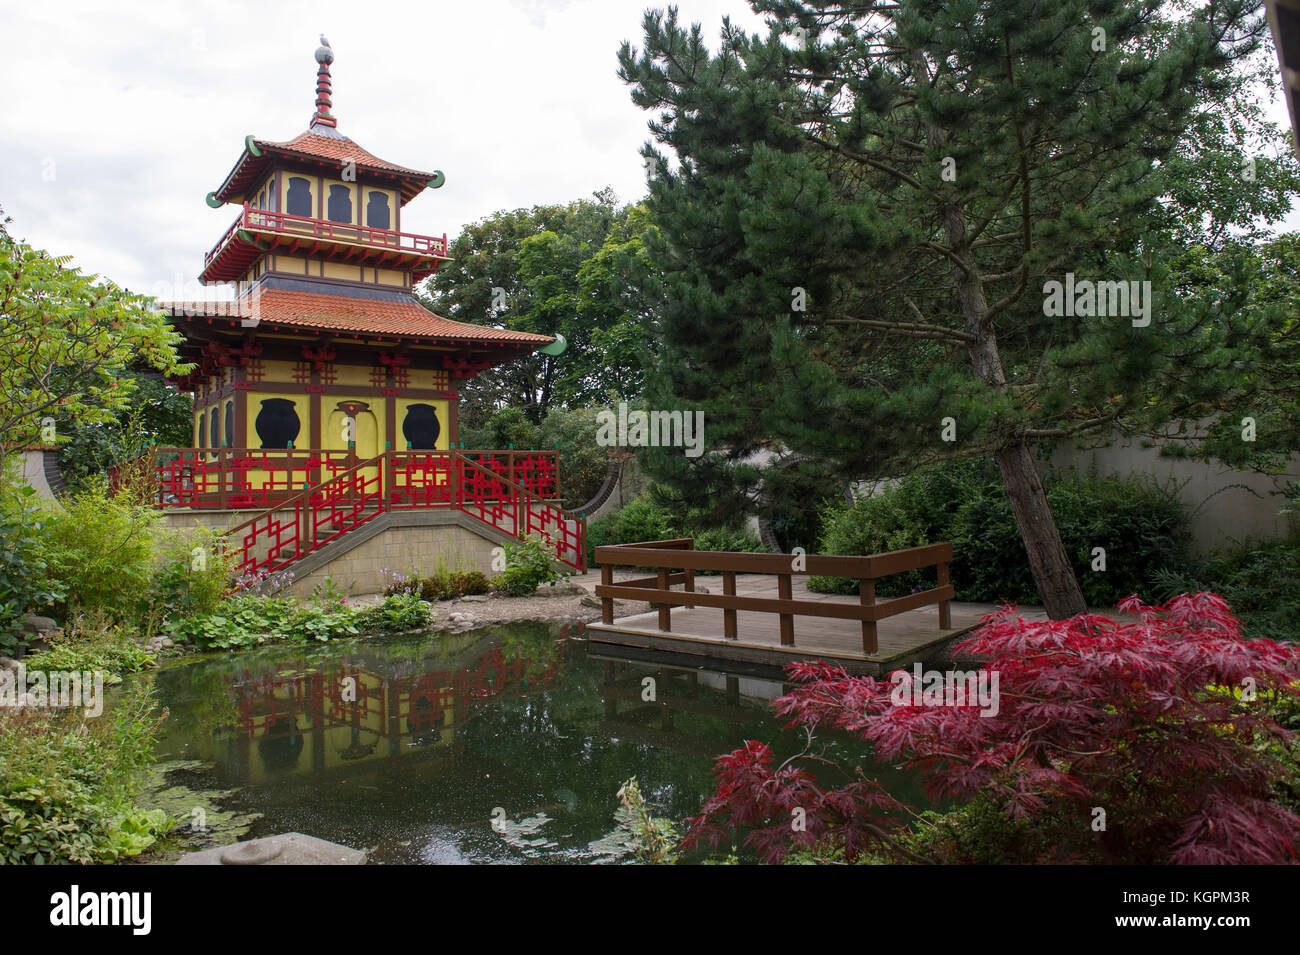 The Japanese Pagoda and gardens in the centre of Peasholm Park in the North Yorkshire seaside town of Scarborough - Stock Image